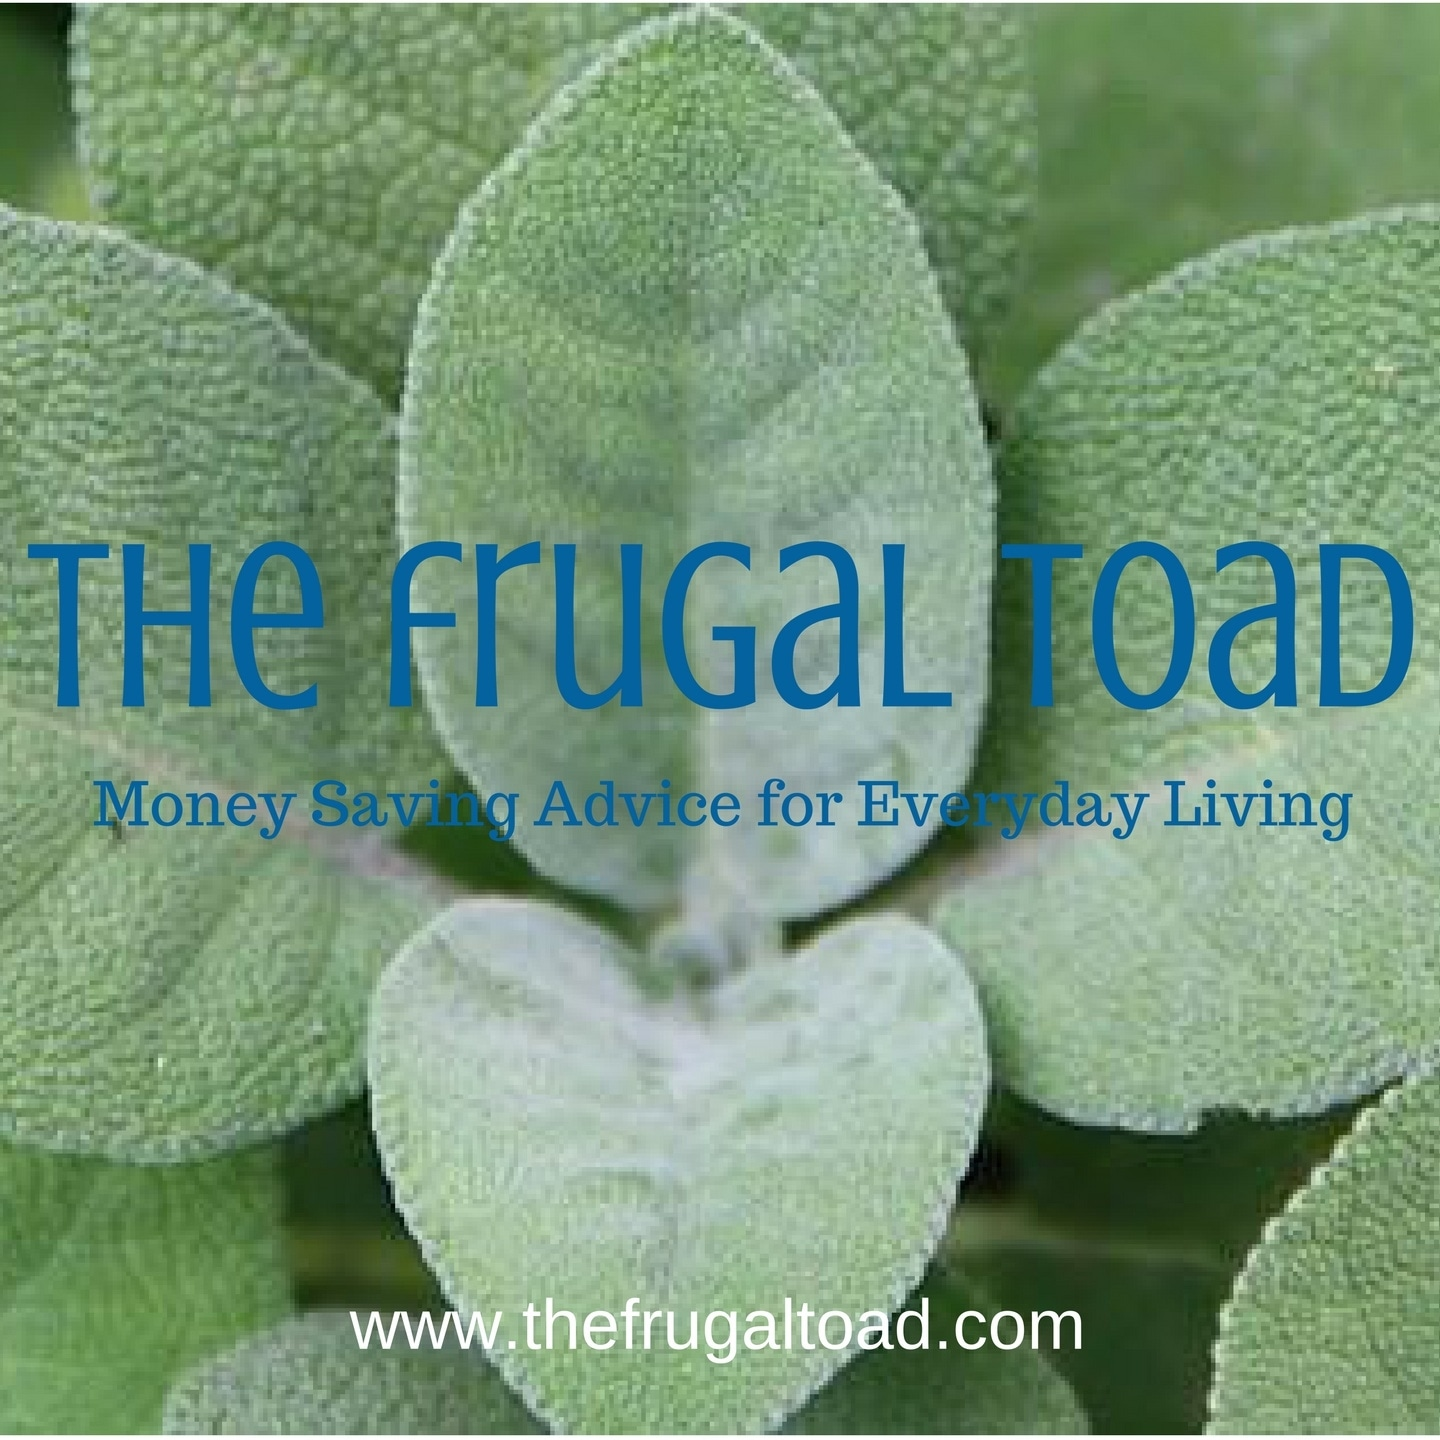 @thefrugaltoad profile image